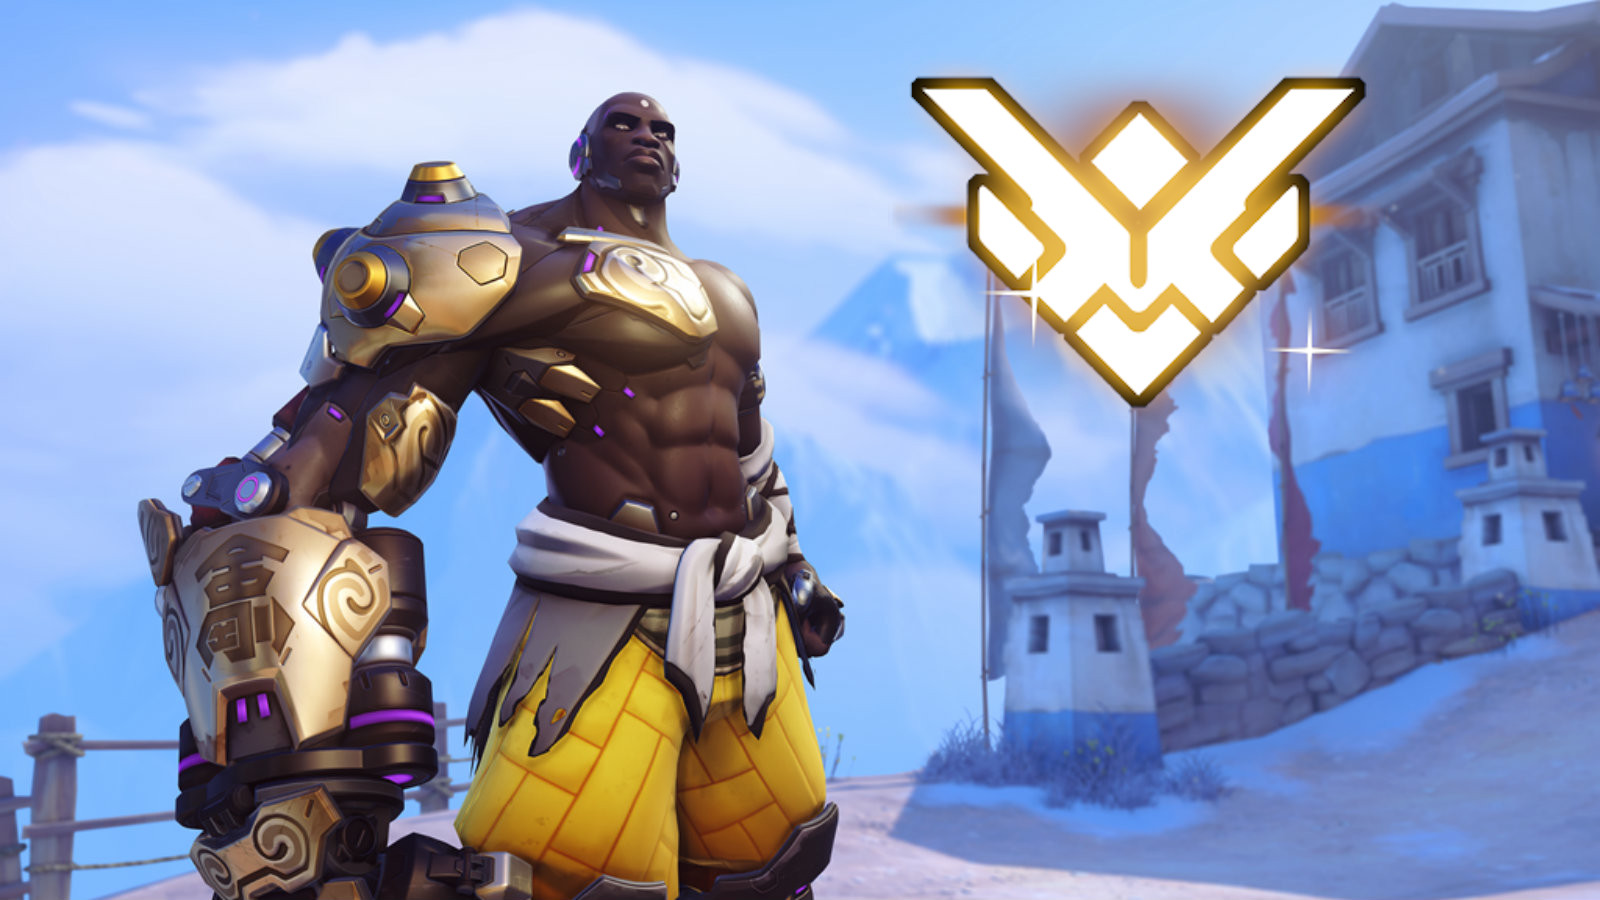 Doomfist starts at new rank in Overwatch